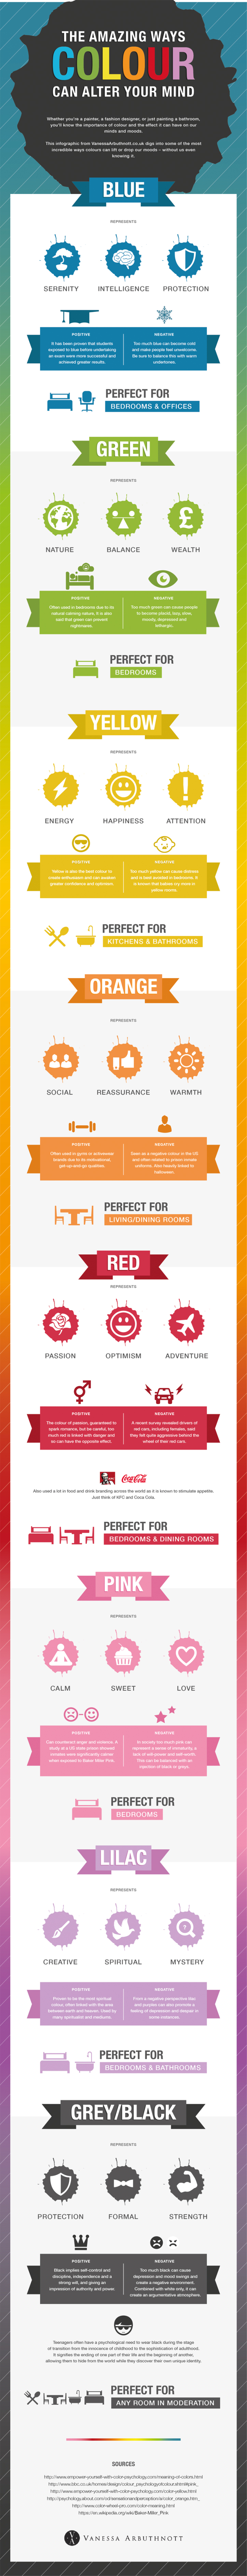 the amazing ways color can alter your mind infographic